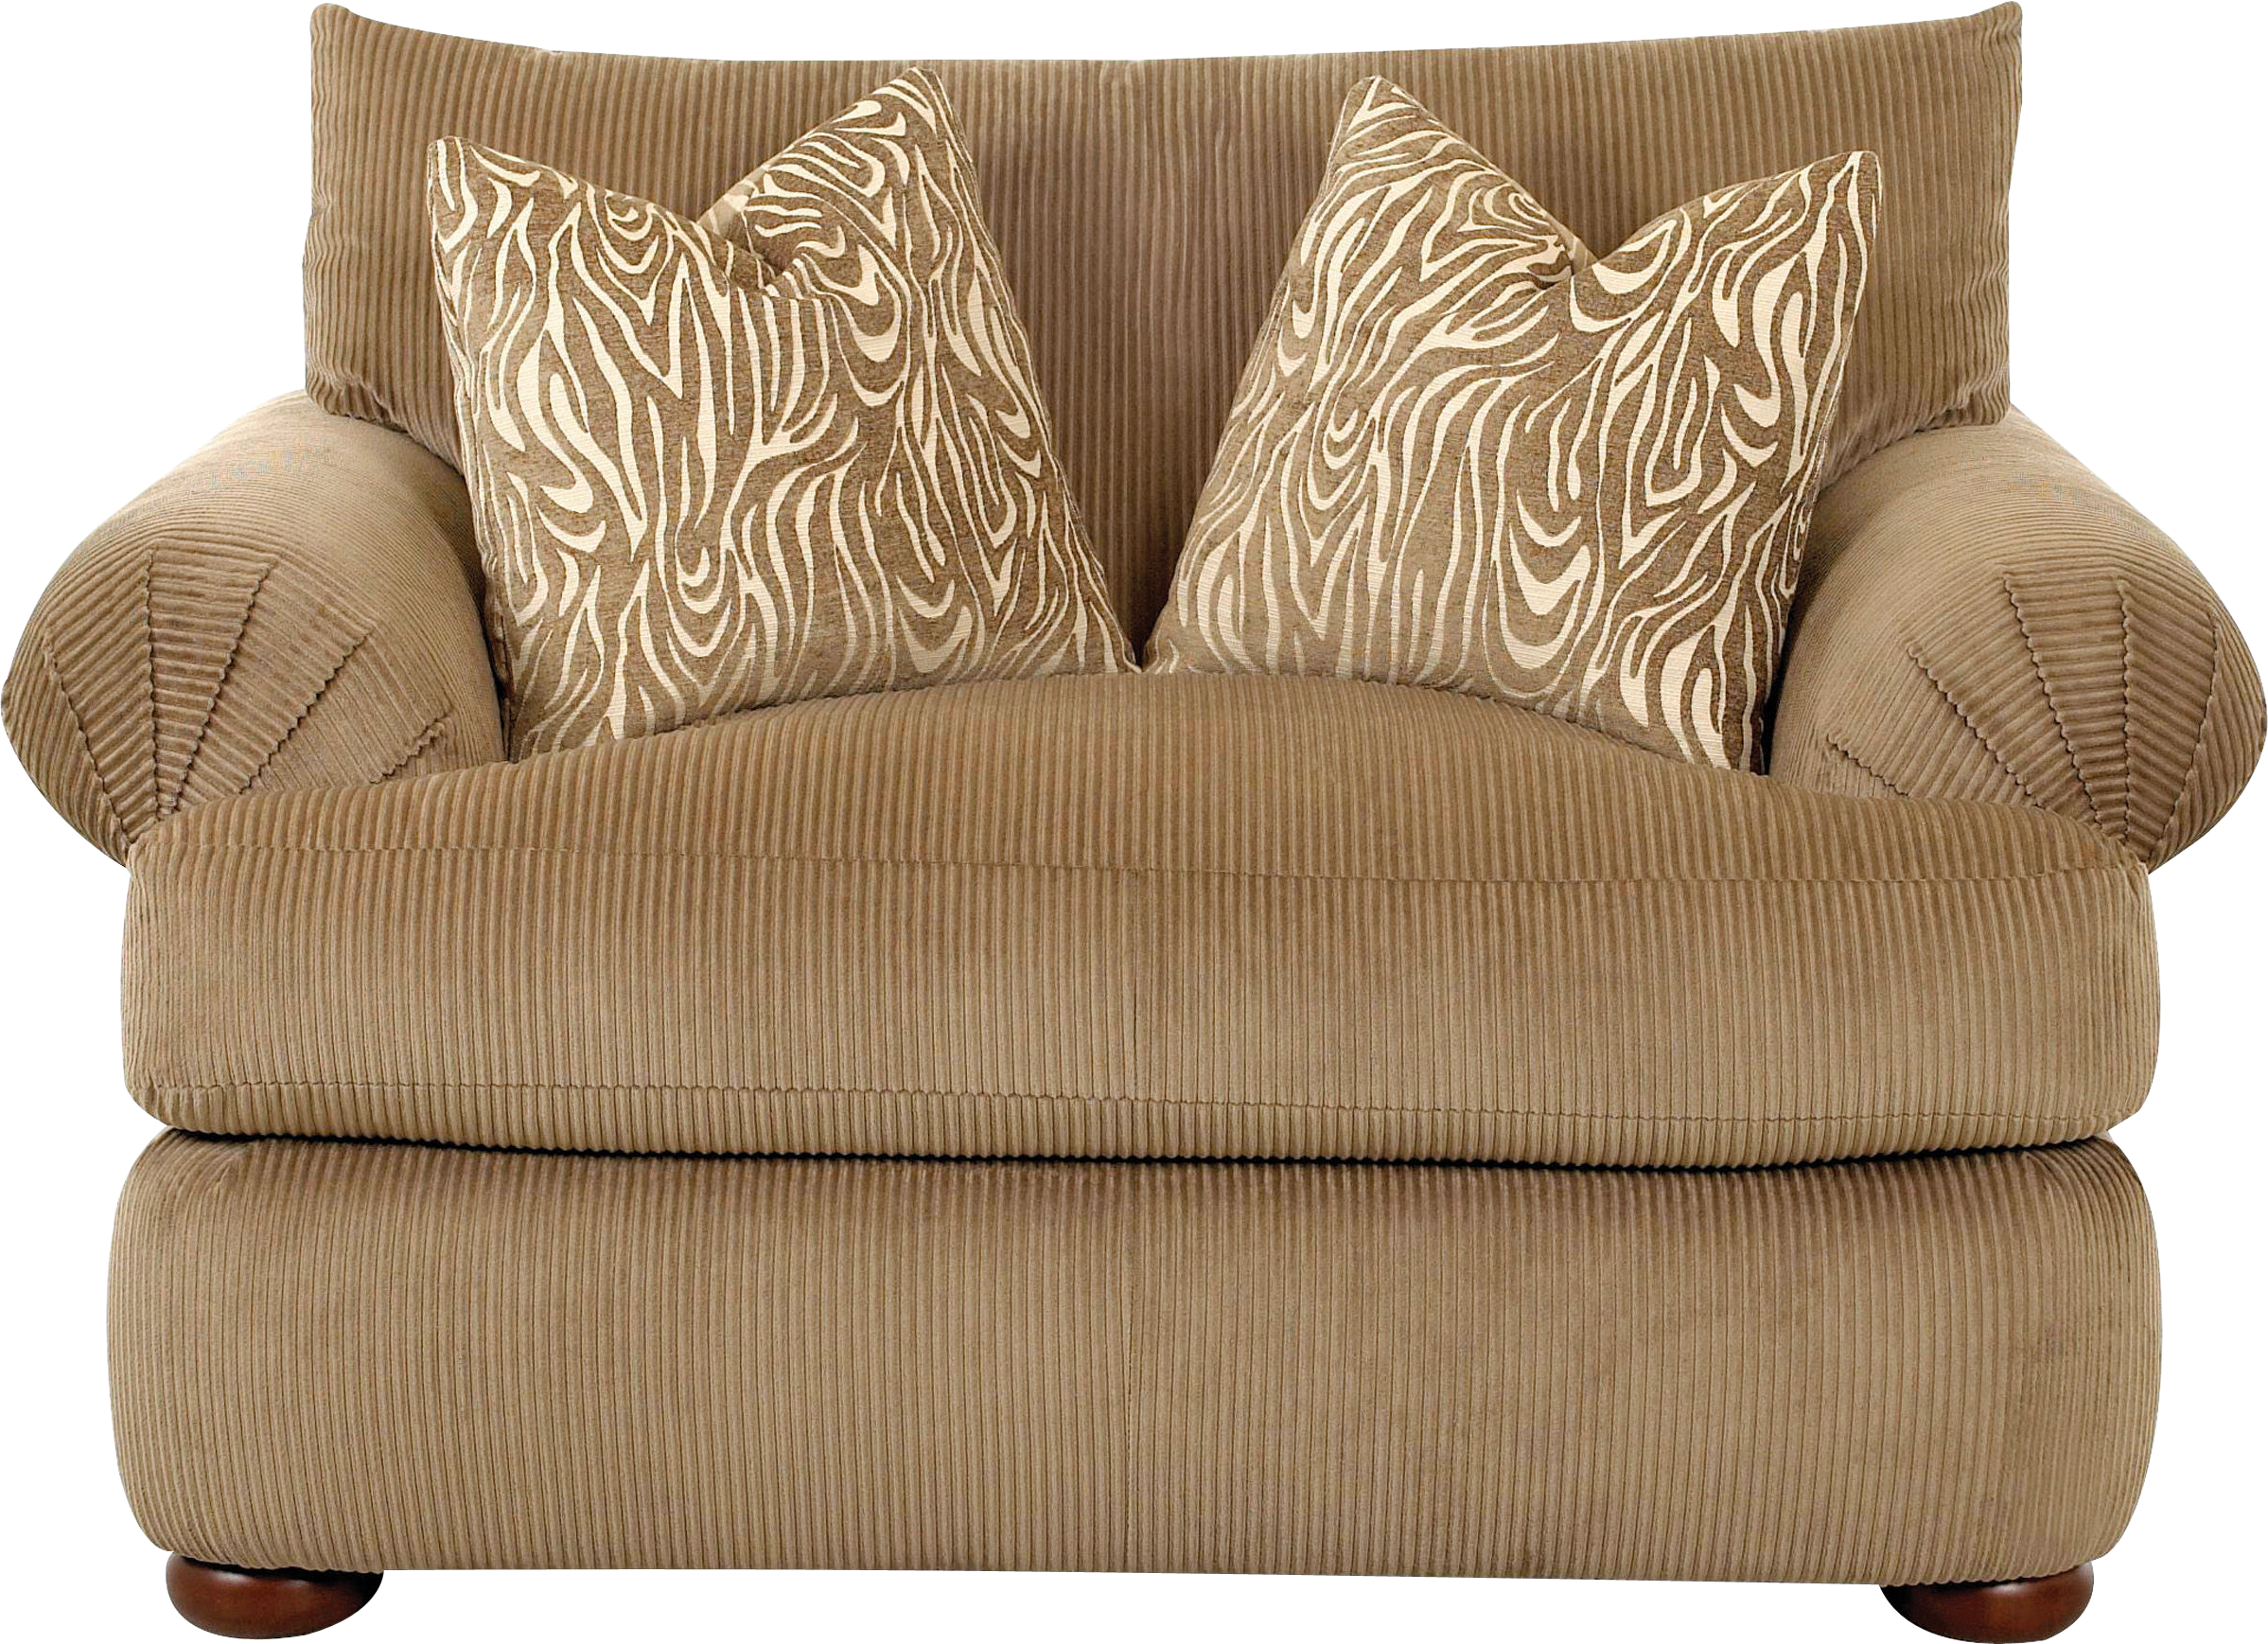 Furniture clipart single couch, Furniture single couch ...